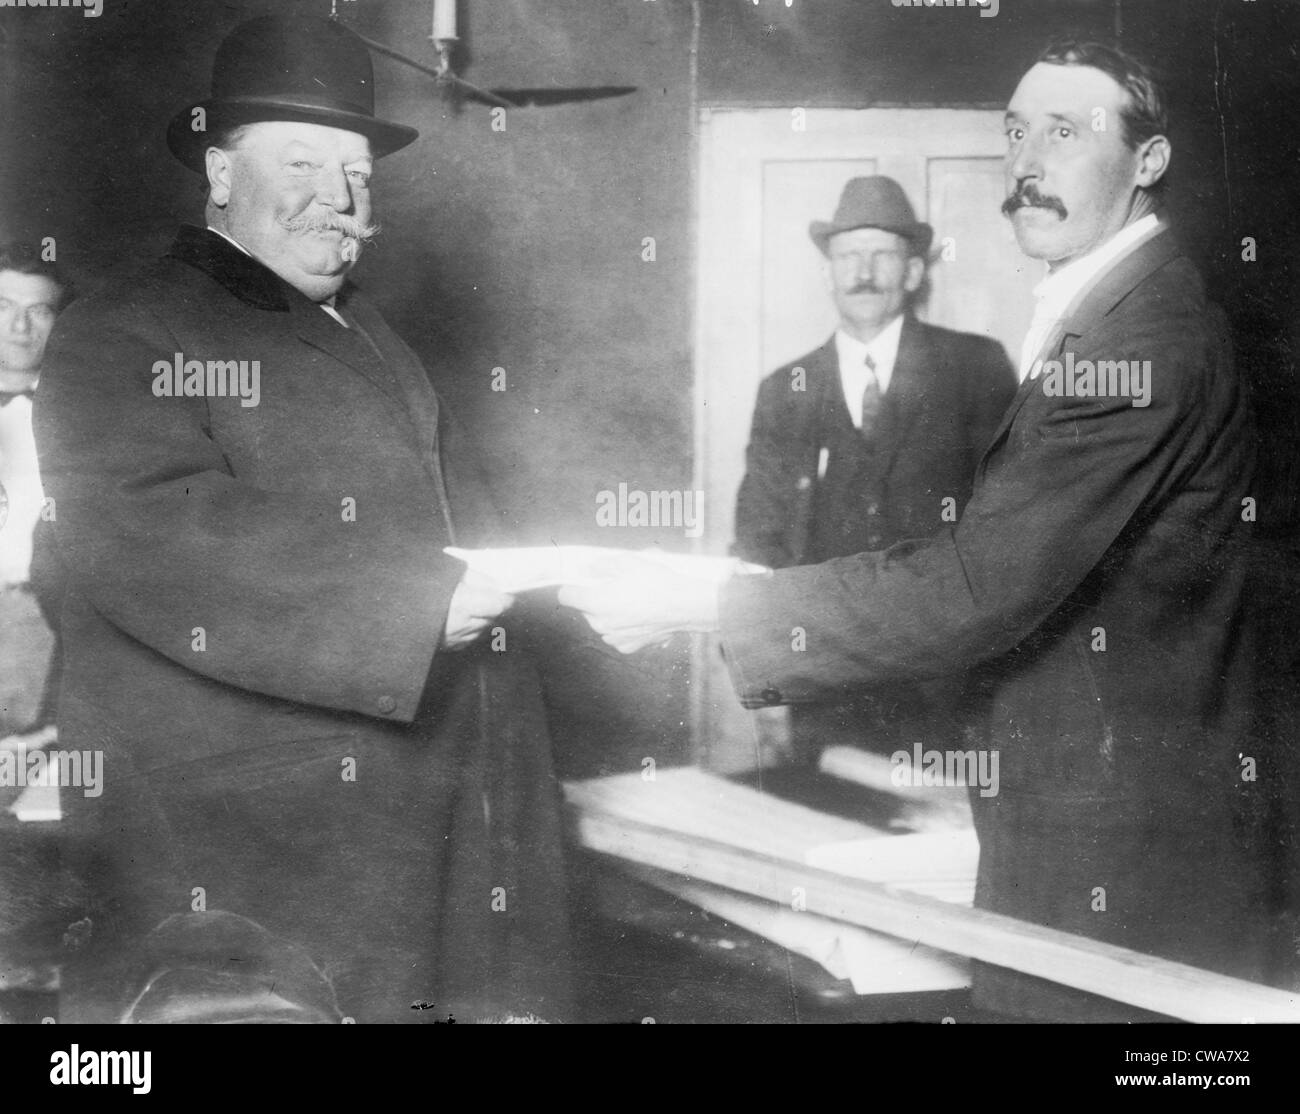 President William Taft (1857-1930) voting in 1912, when the divided Republican lost the Presidency to Democratic Stock Photo